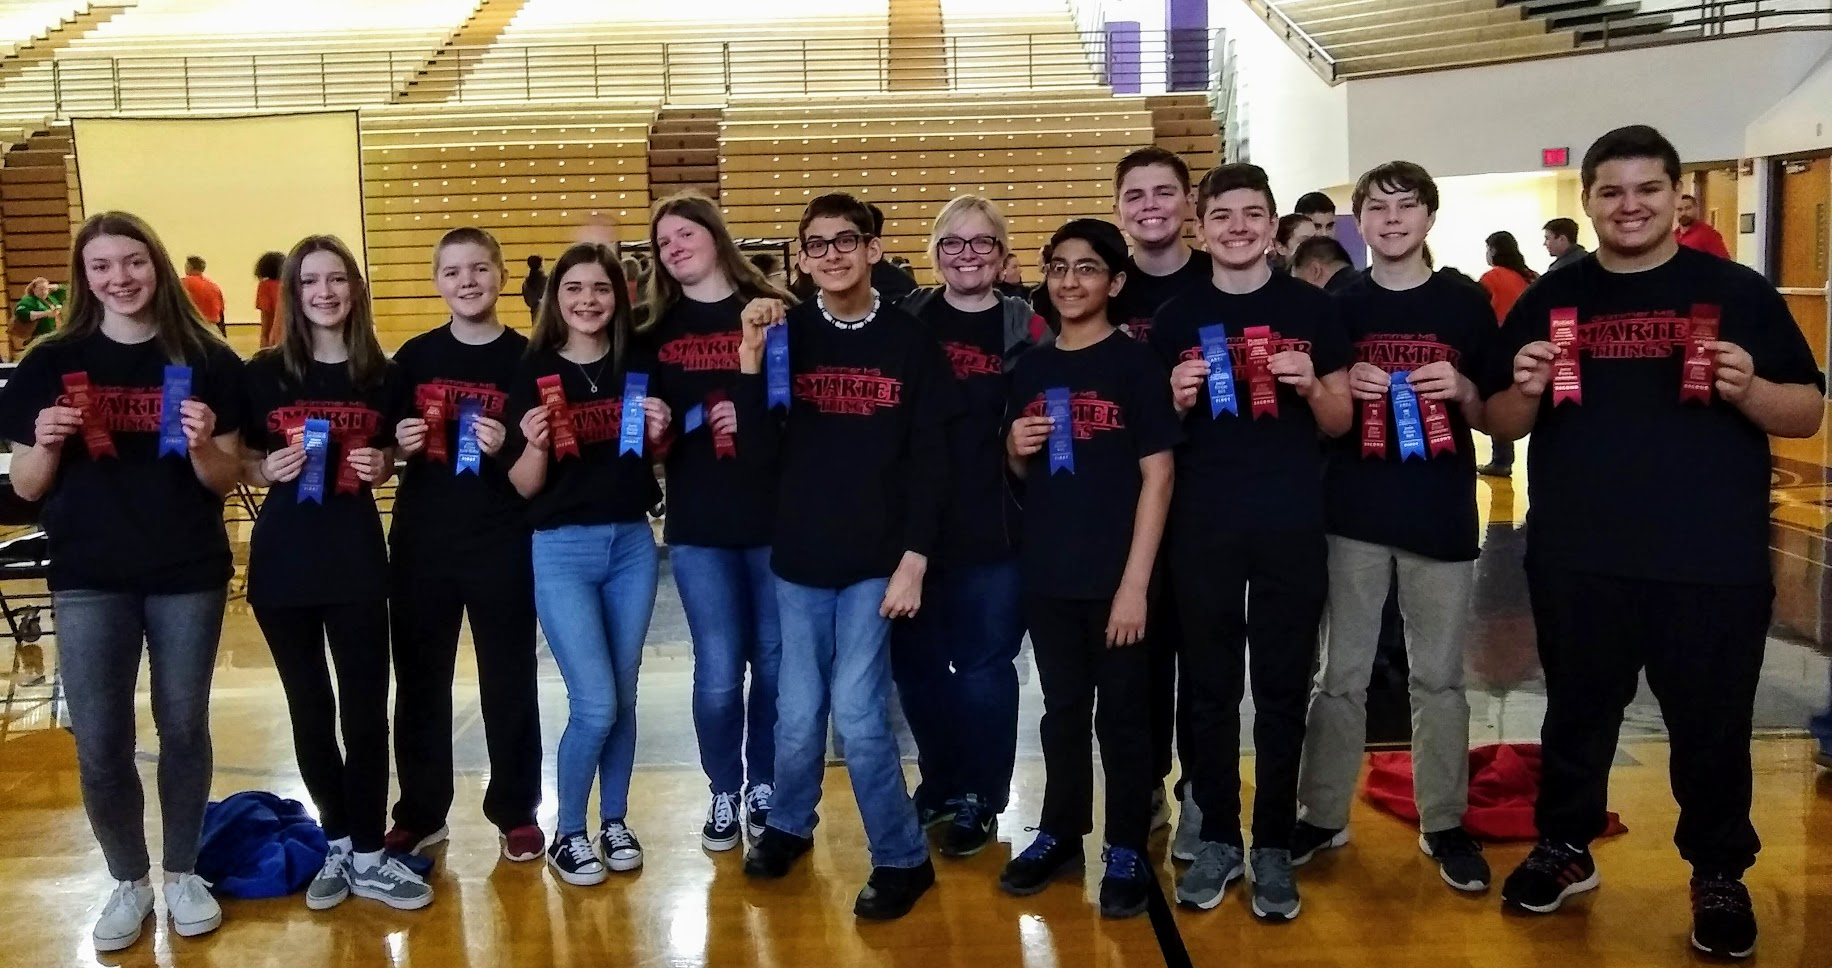 Grimmer's Academic Super Bowl team did an amazing job at the regional competition placing 2nd in science and interdisciplinary and 1st in English, math, and social studies in our division. The English team placed 6th in the state, and the social studies team placed 4th in the state! Fantastic job!!